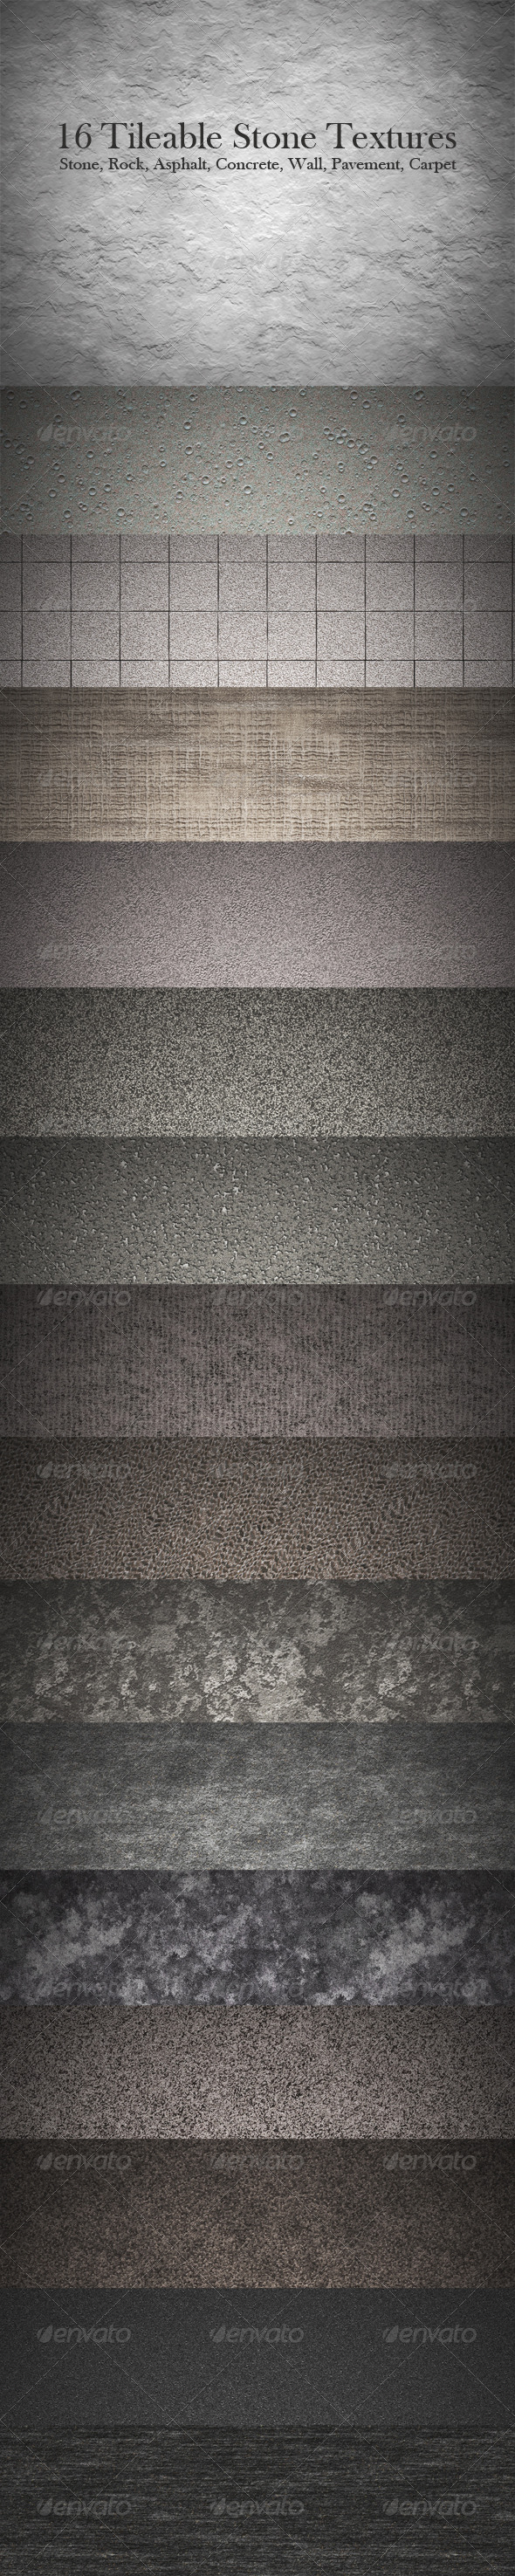 16 Tileable Stone Texture Patterns - Miscellaneous Textures / Fills / Patterns